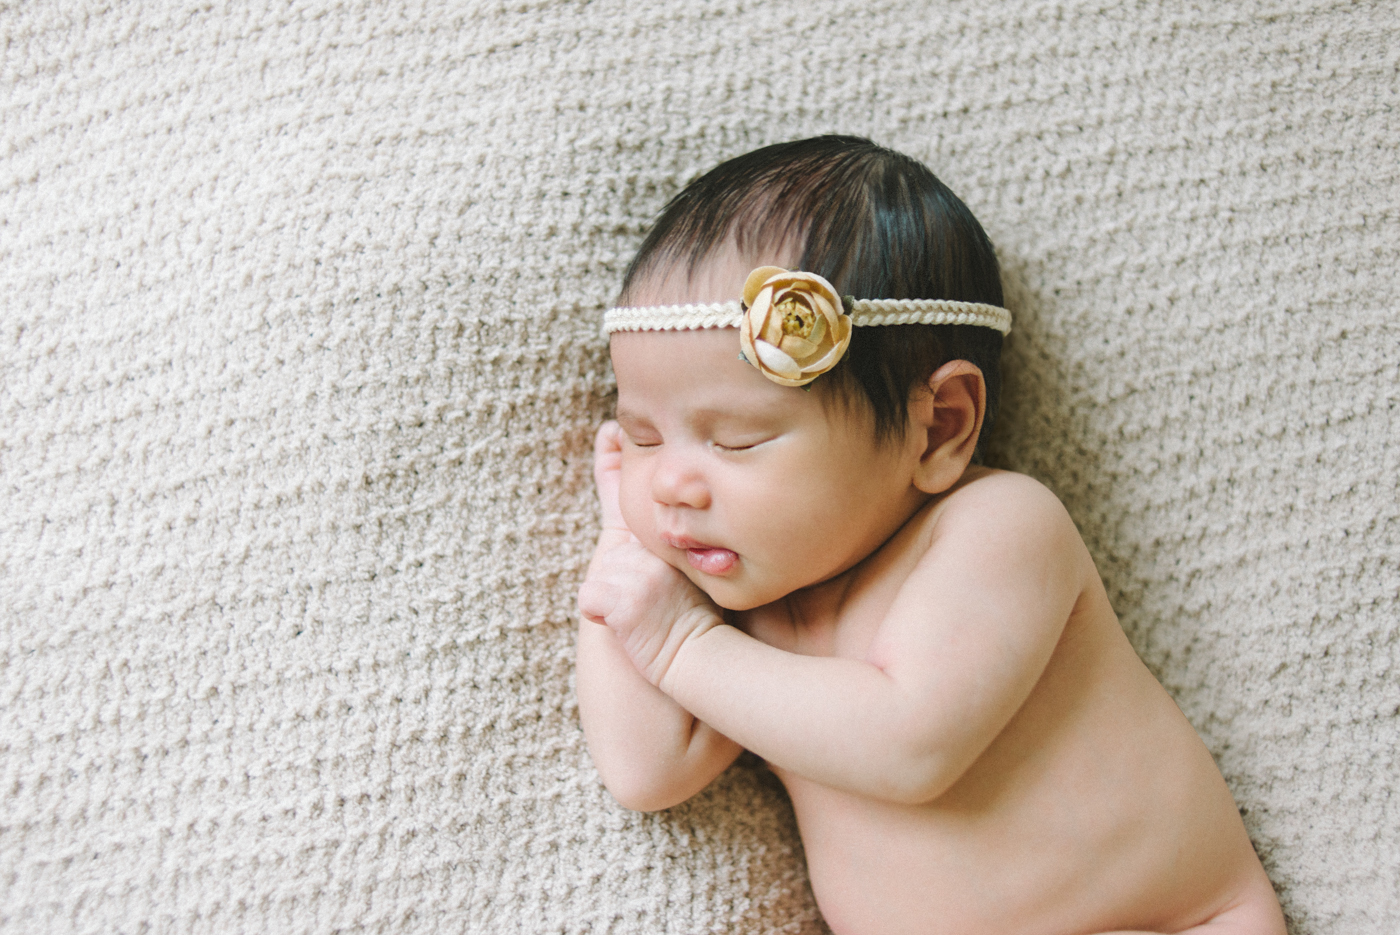 best-newborn-photographer-in-portland-oregon-flower-headband-cream-and-yellow-sleeping-baby-shelley-marie-photo-6